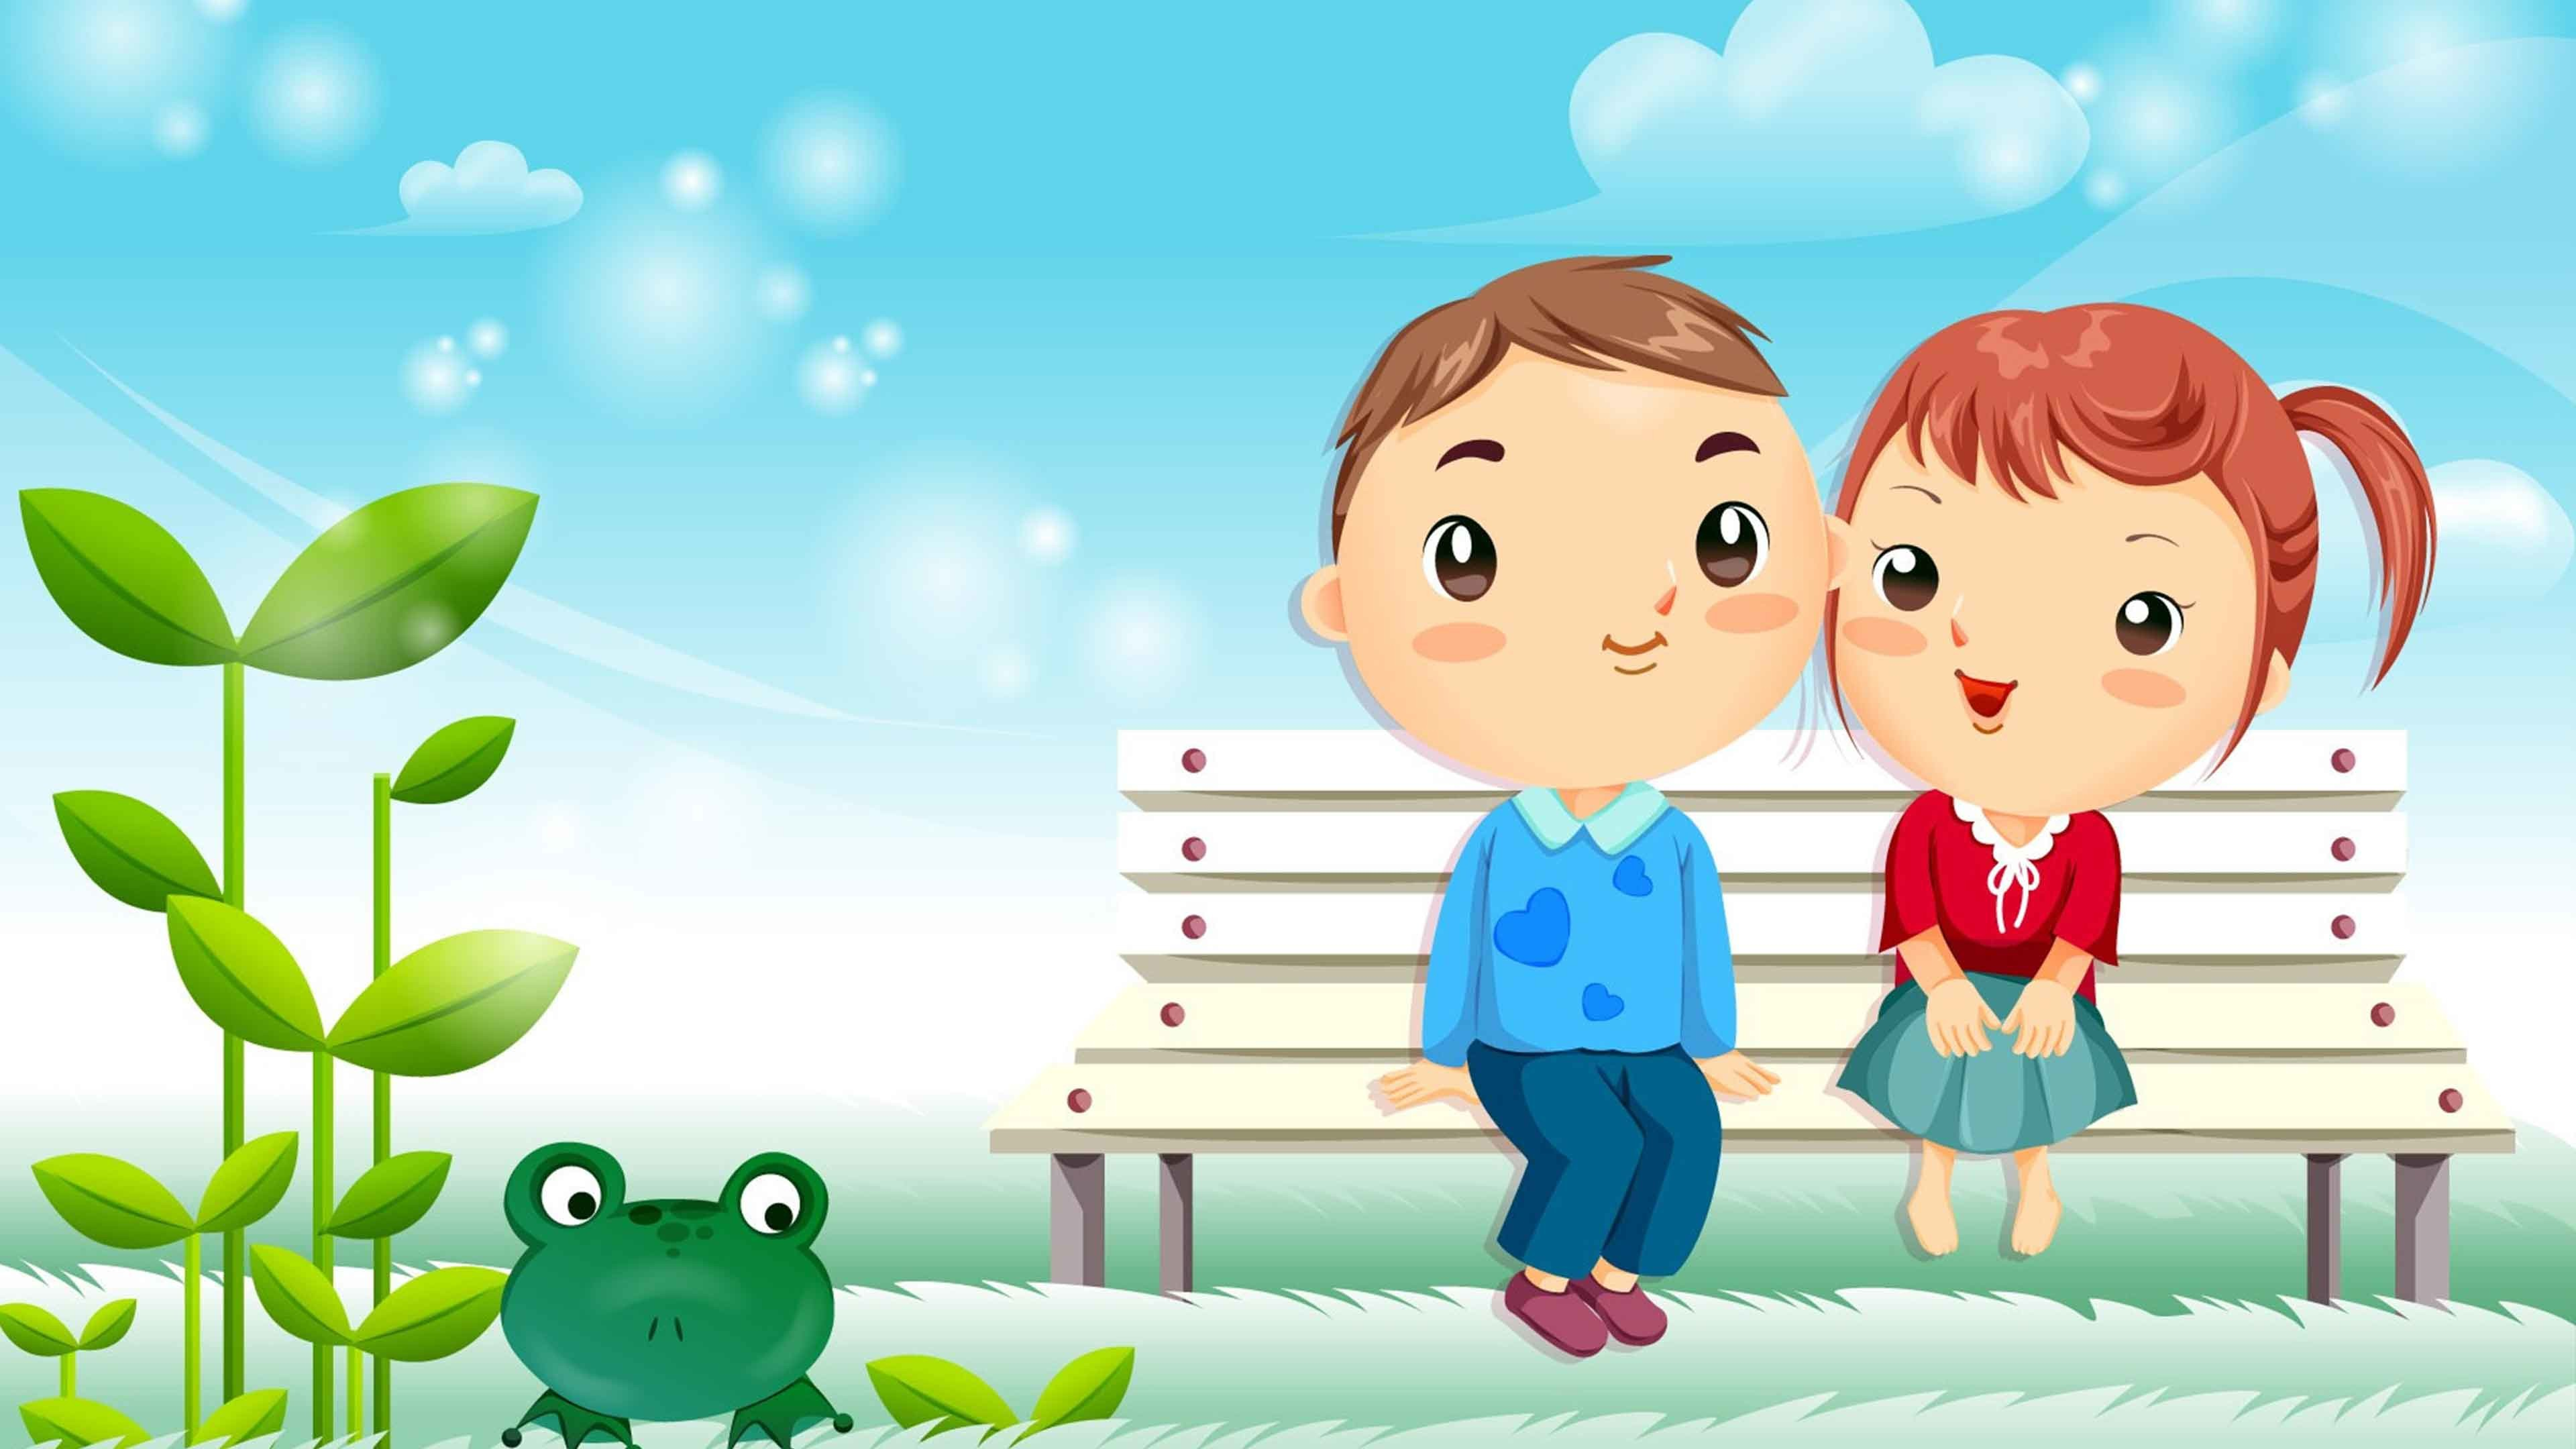 Super Cute Little Baby Wallpapers Cute Cartoon Wallpapers 60 Images